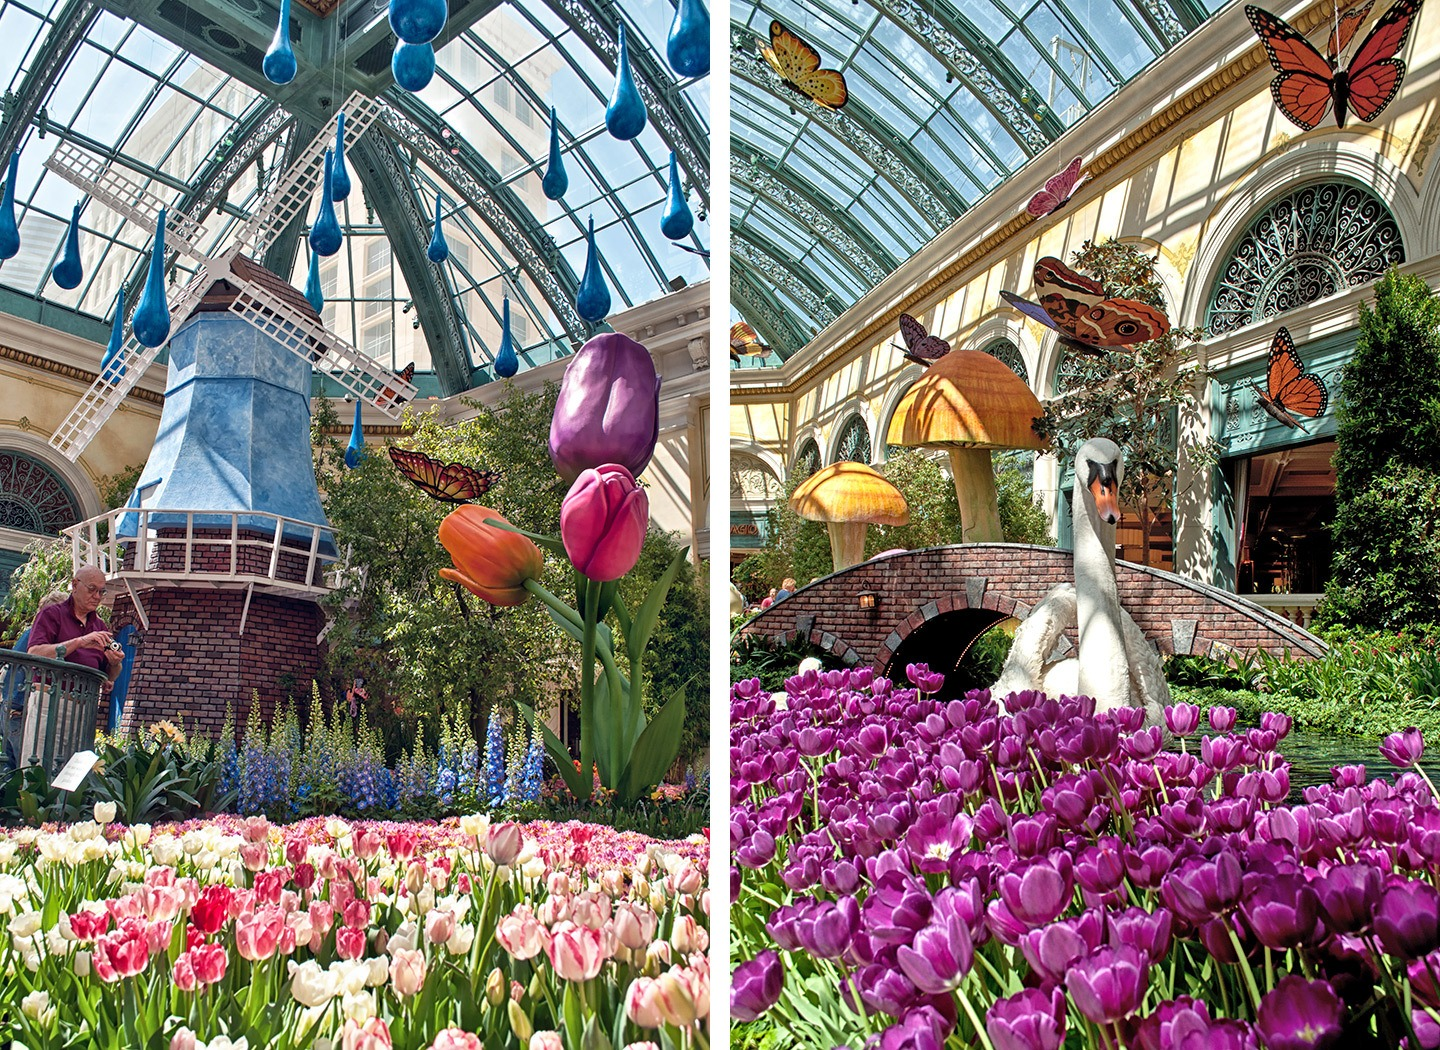 Indoor botanical gardens at the Bellagio casino in Las Vegas, Nevada USA